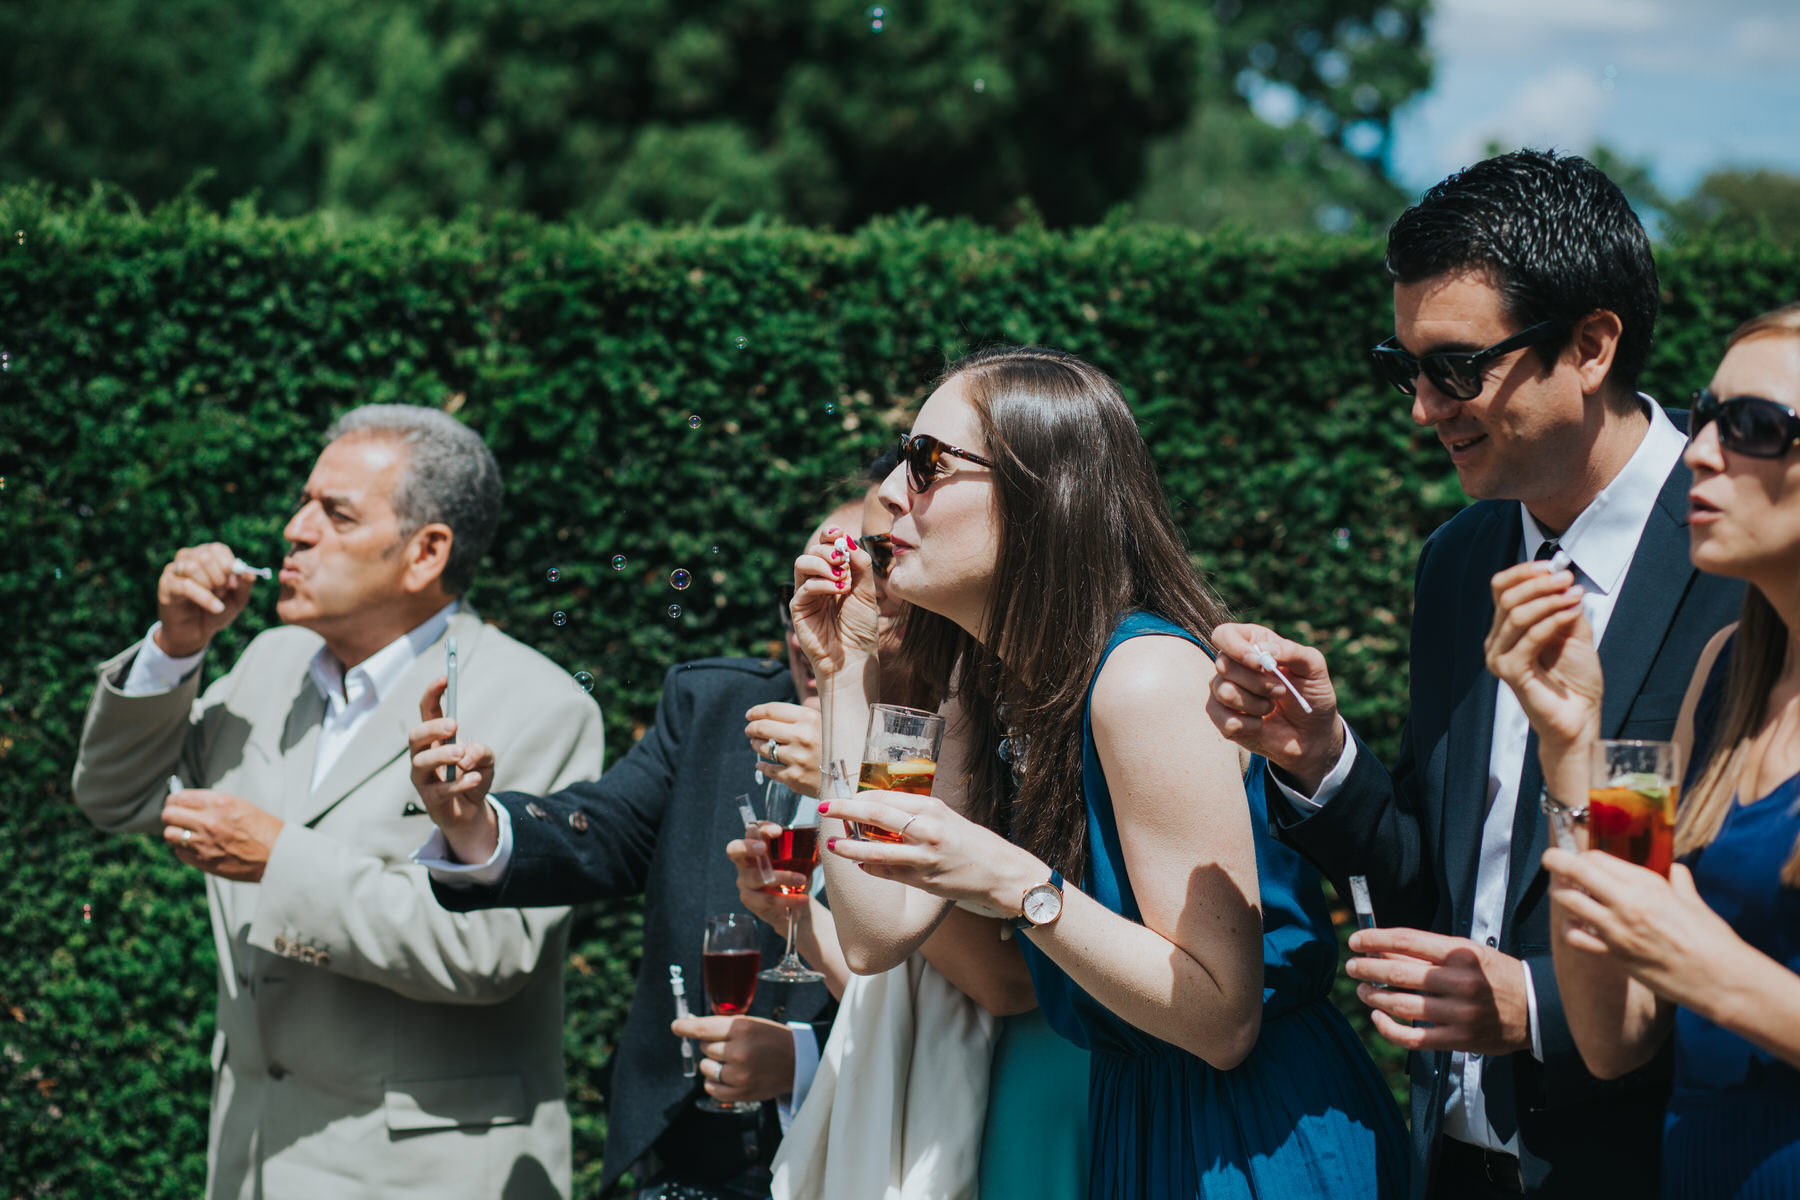 110 Pembroke Lodge South Lawn wedding guests blowing bubbles.jpg